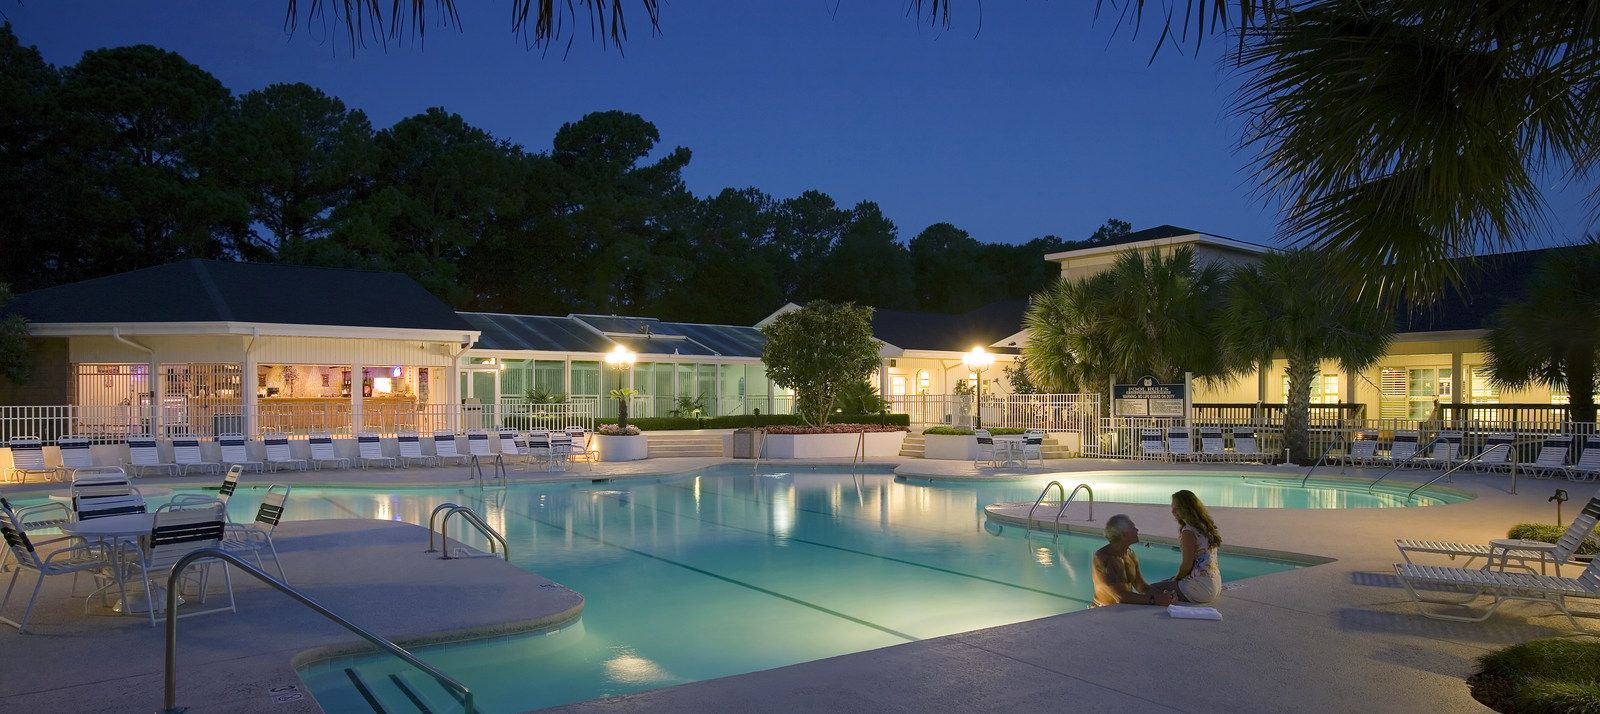 Sunset Beach Nc Hotels Sea Trail Golf Conference Center Resort 3 Pools Spa Kids Activities Shuttles